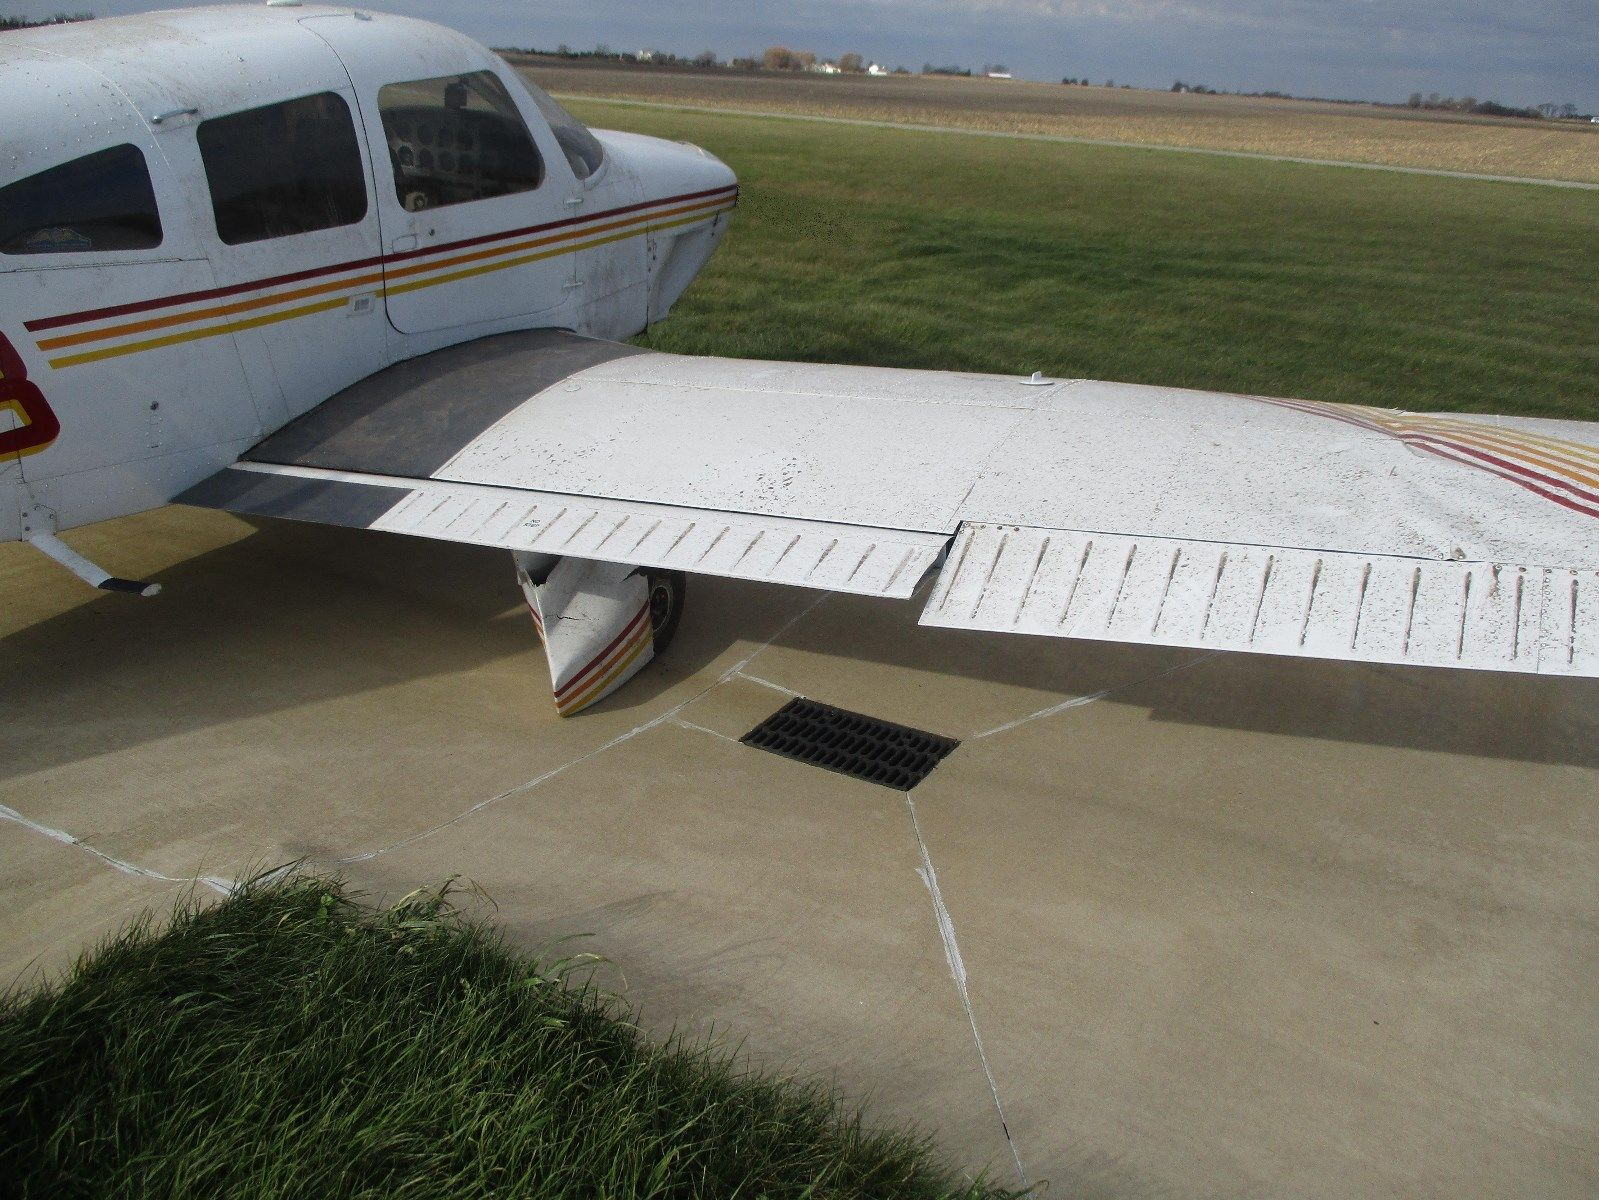 damaged 1979 Piper PA 28 236 Dakota aircraft